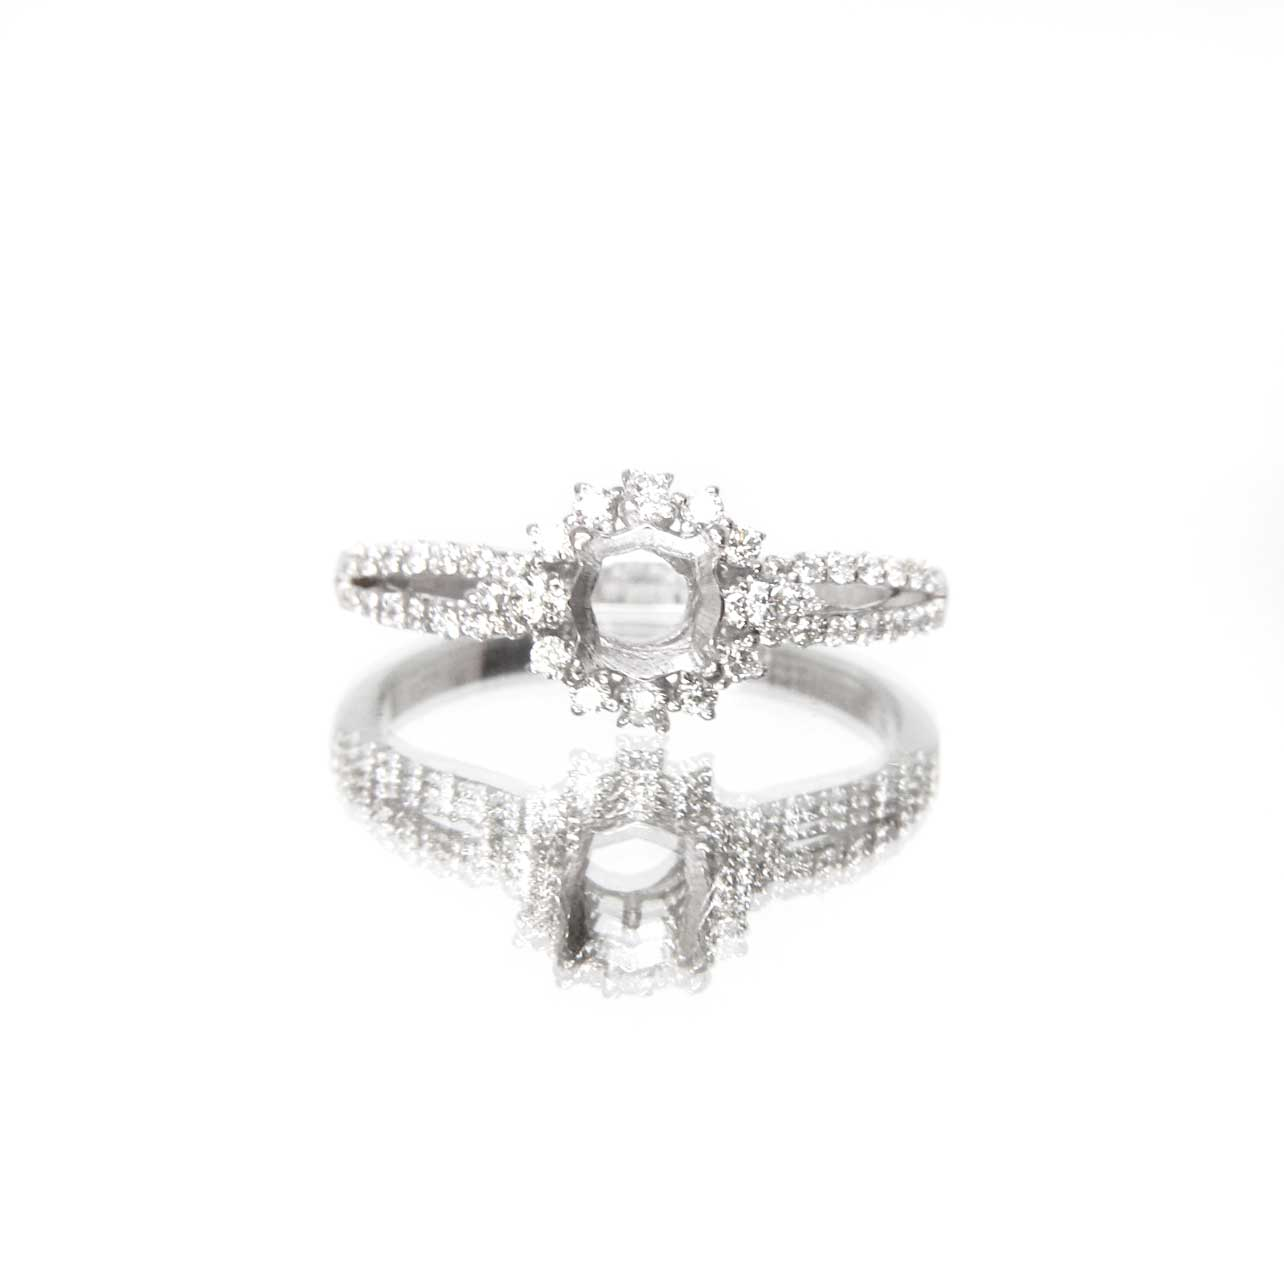 Diamond Series Ring - Sunburst Ring Setting Only (US 7, 18K White Gold)